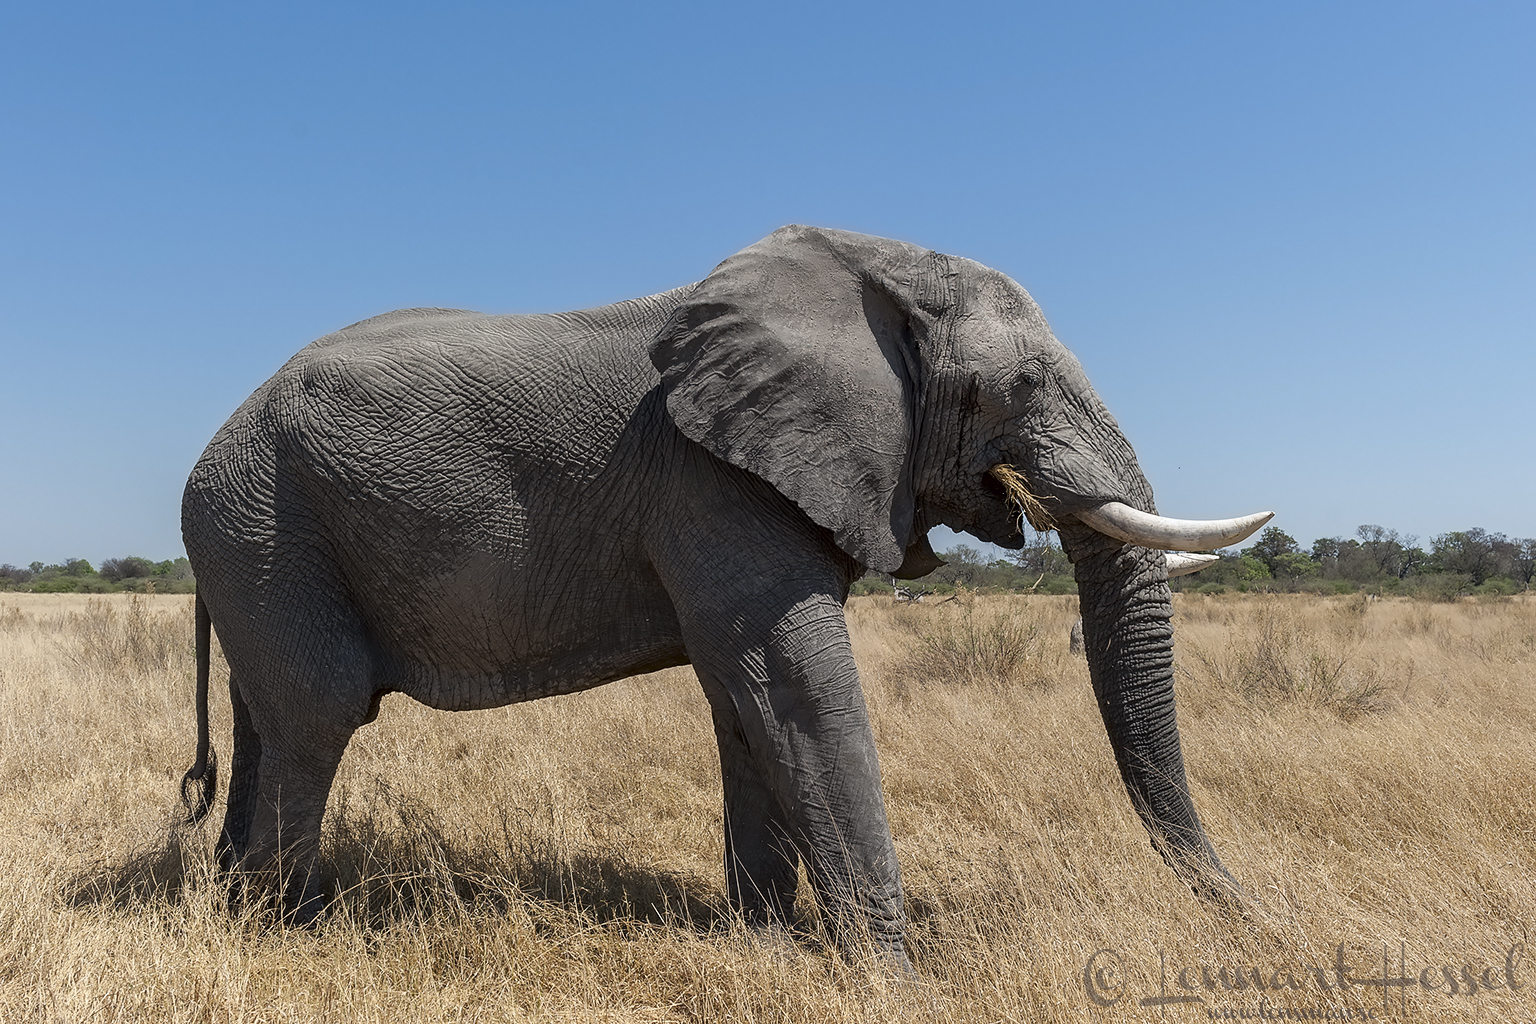 Elephant in Moremi Game Reserve, Botswana